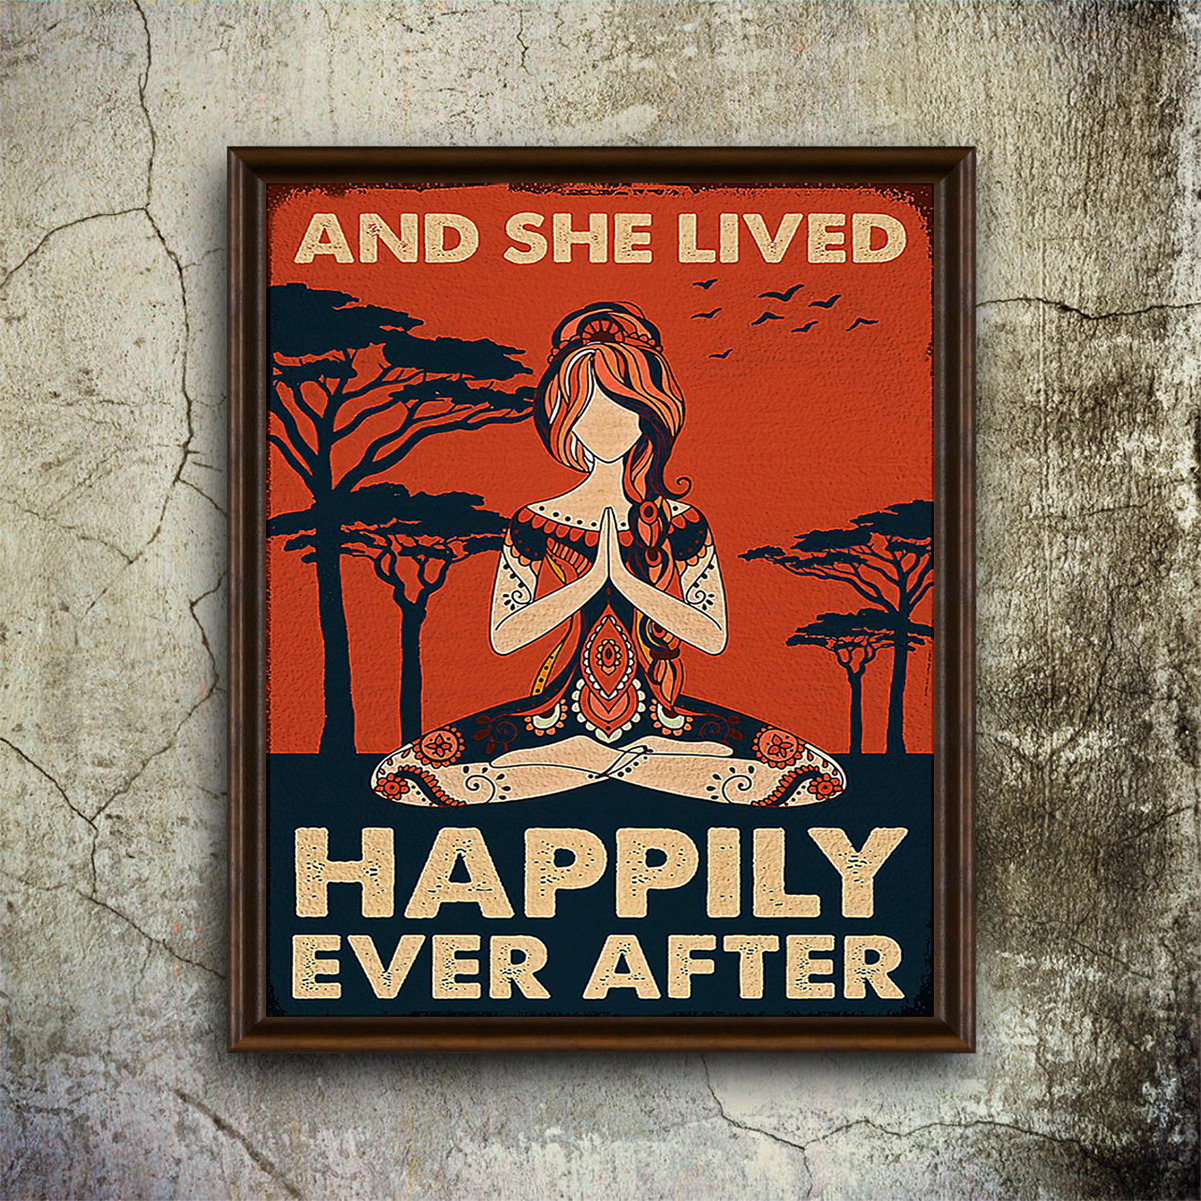 Yoga girl and she lived happily ever after poster A1